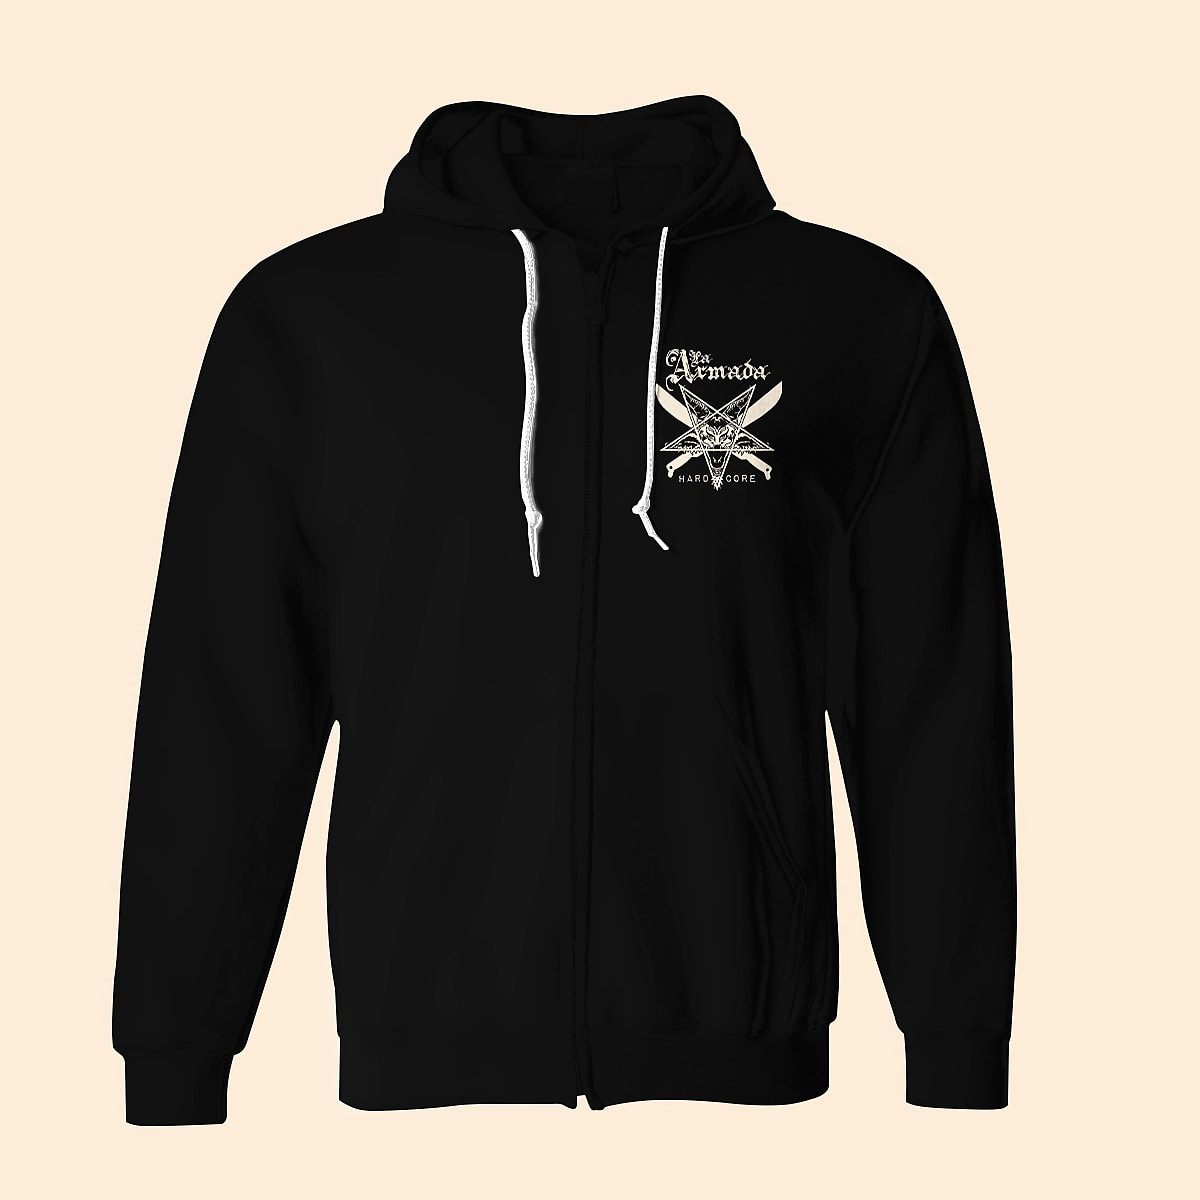 La Armada - The Balance Of Terror - Hoodie  - XXL